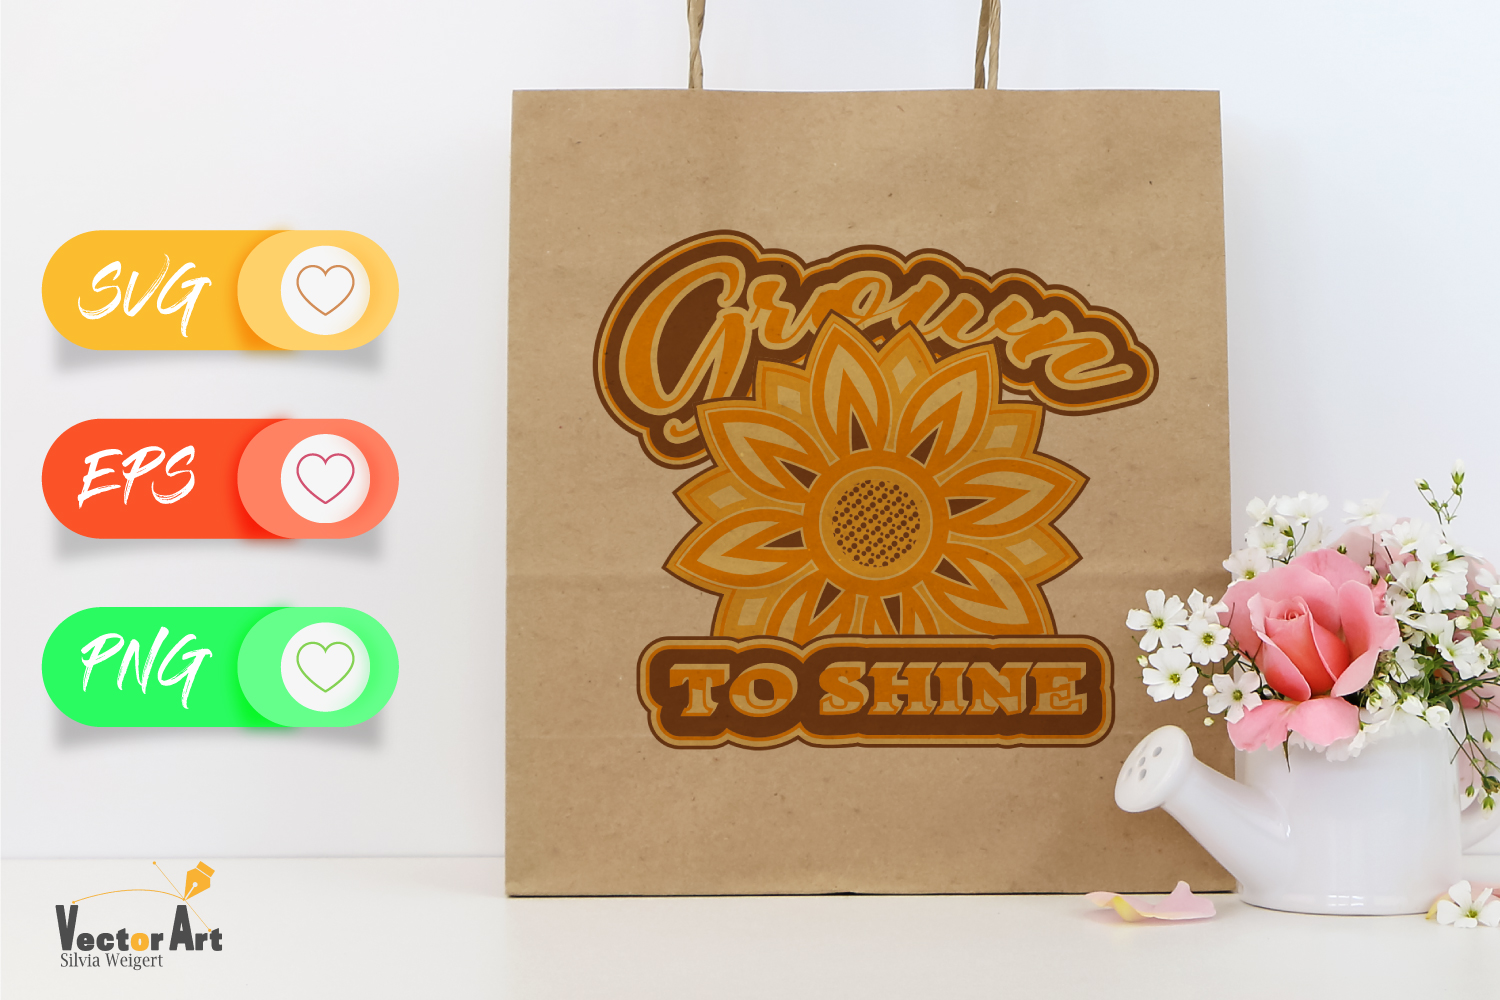 Sunflower - Grown to Shine - Cutting or Sublimation example image 3